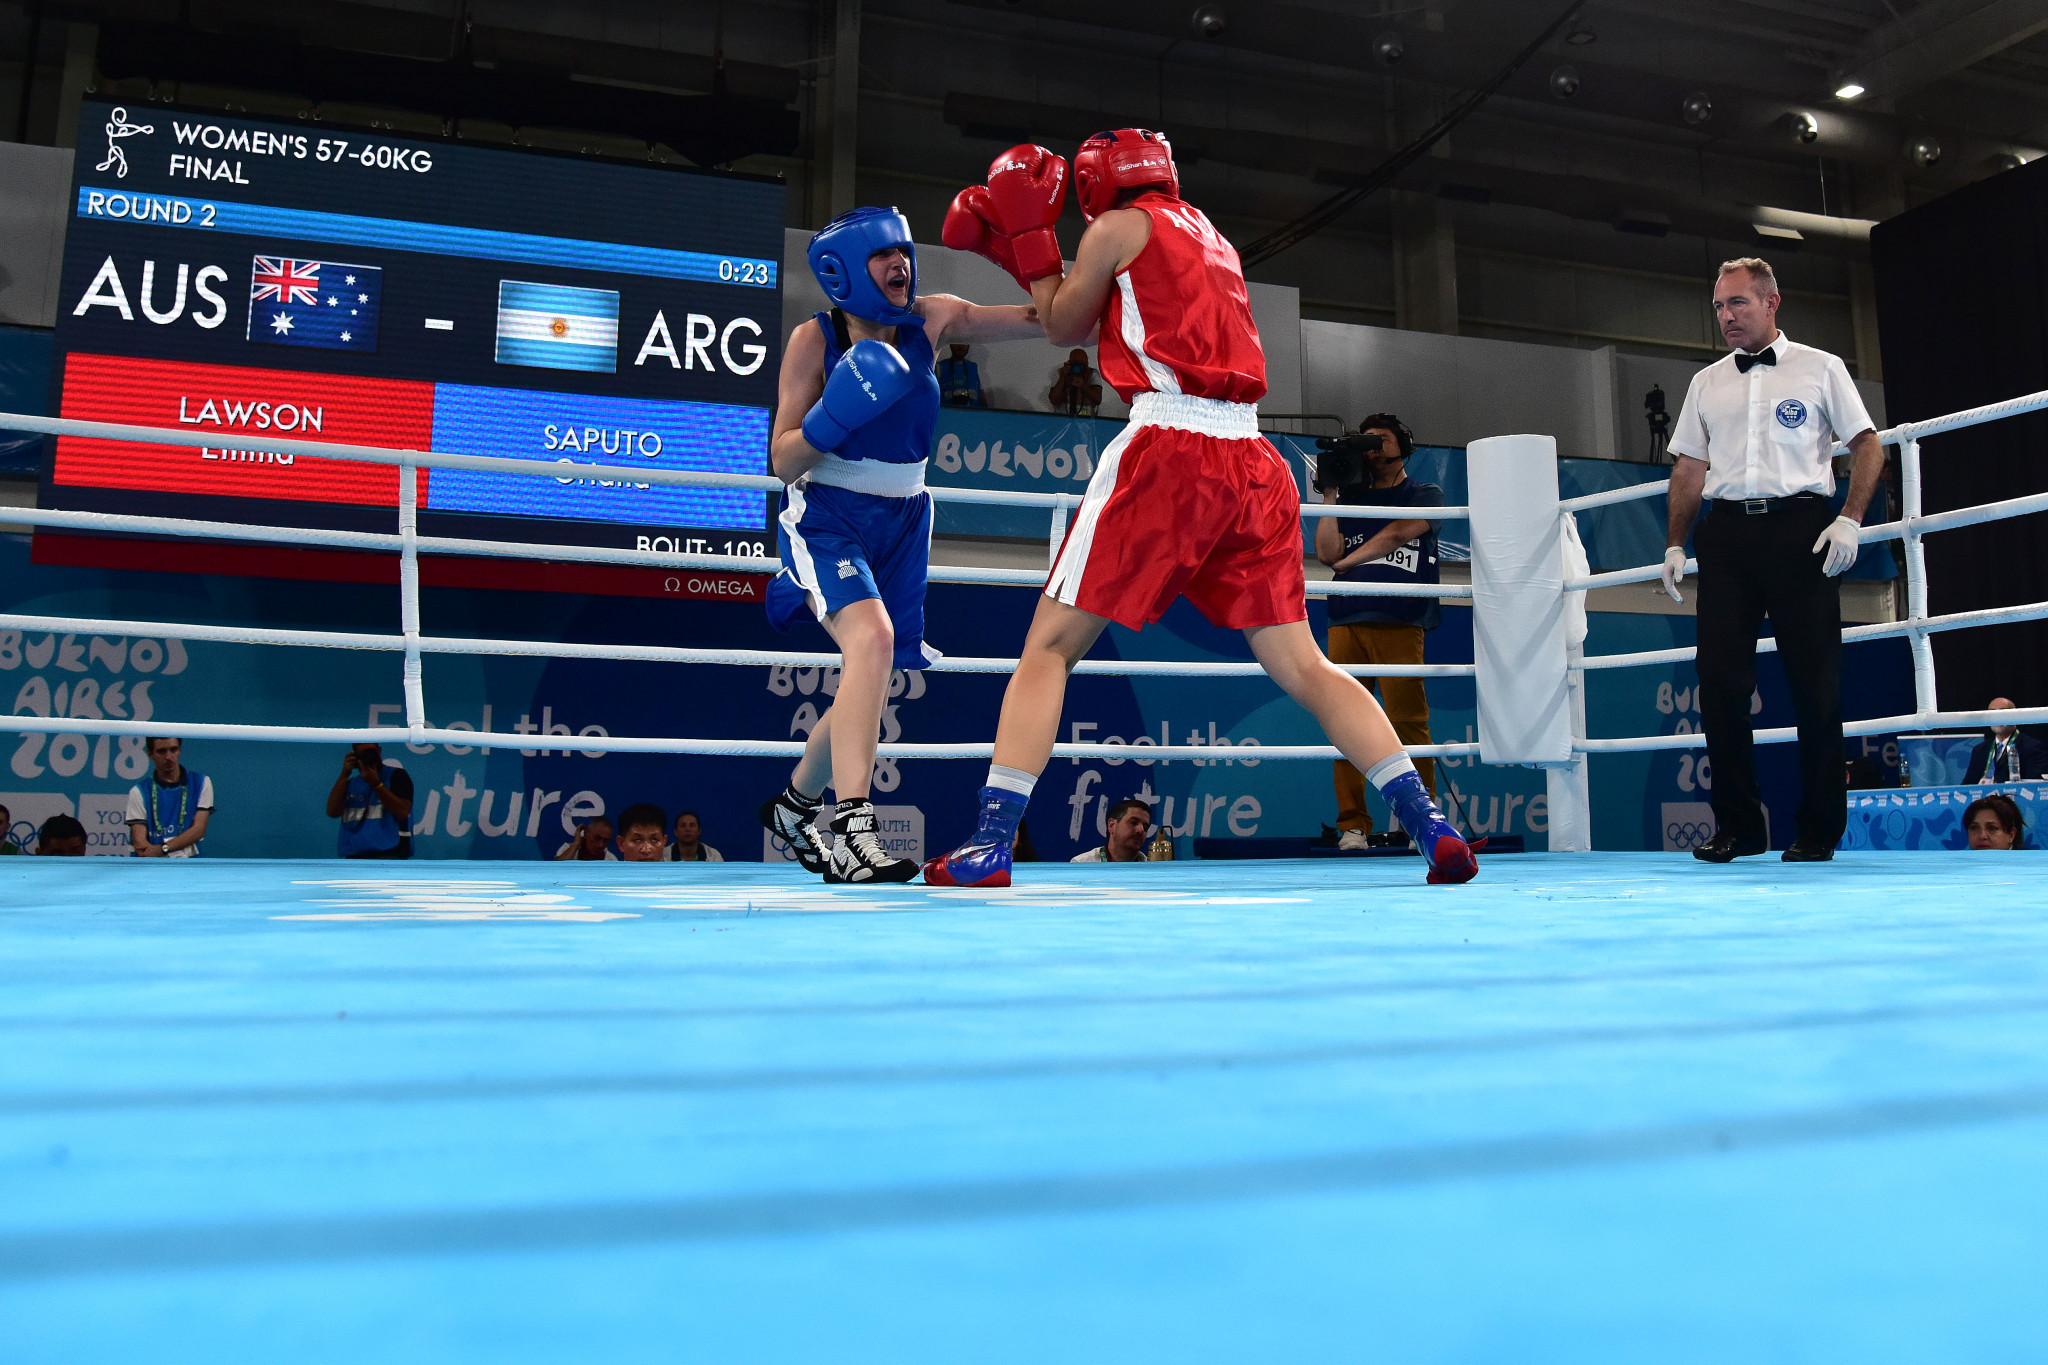 The Polish Boxing Association has confirmed one participant has tested positive for COVID-19 and has been ruled out of the event ©Getty Images